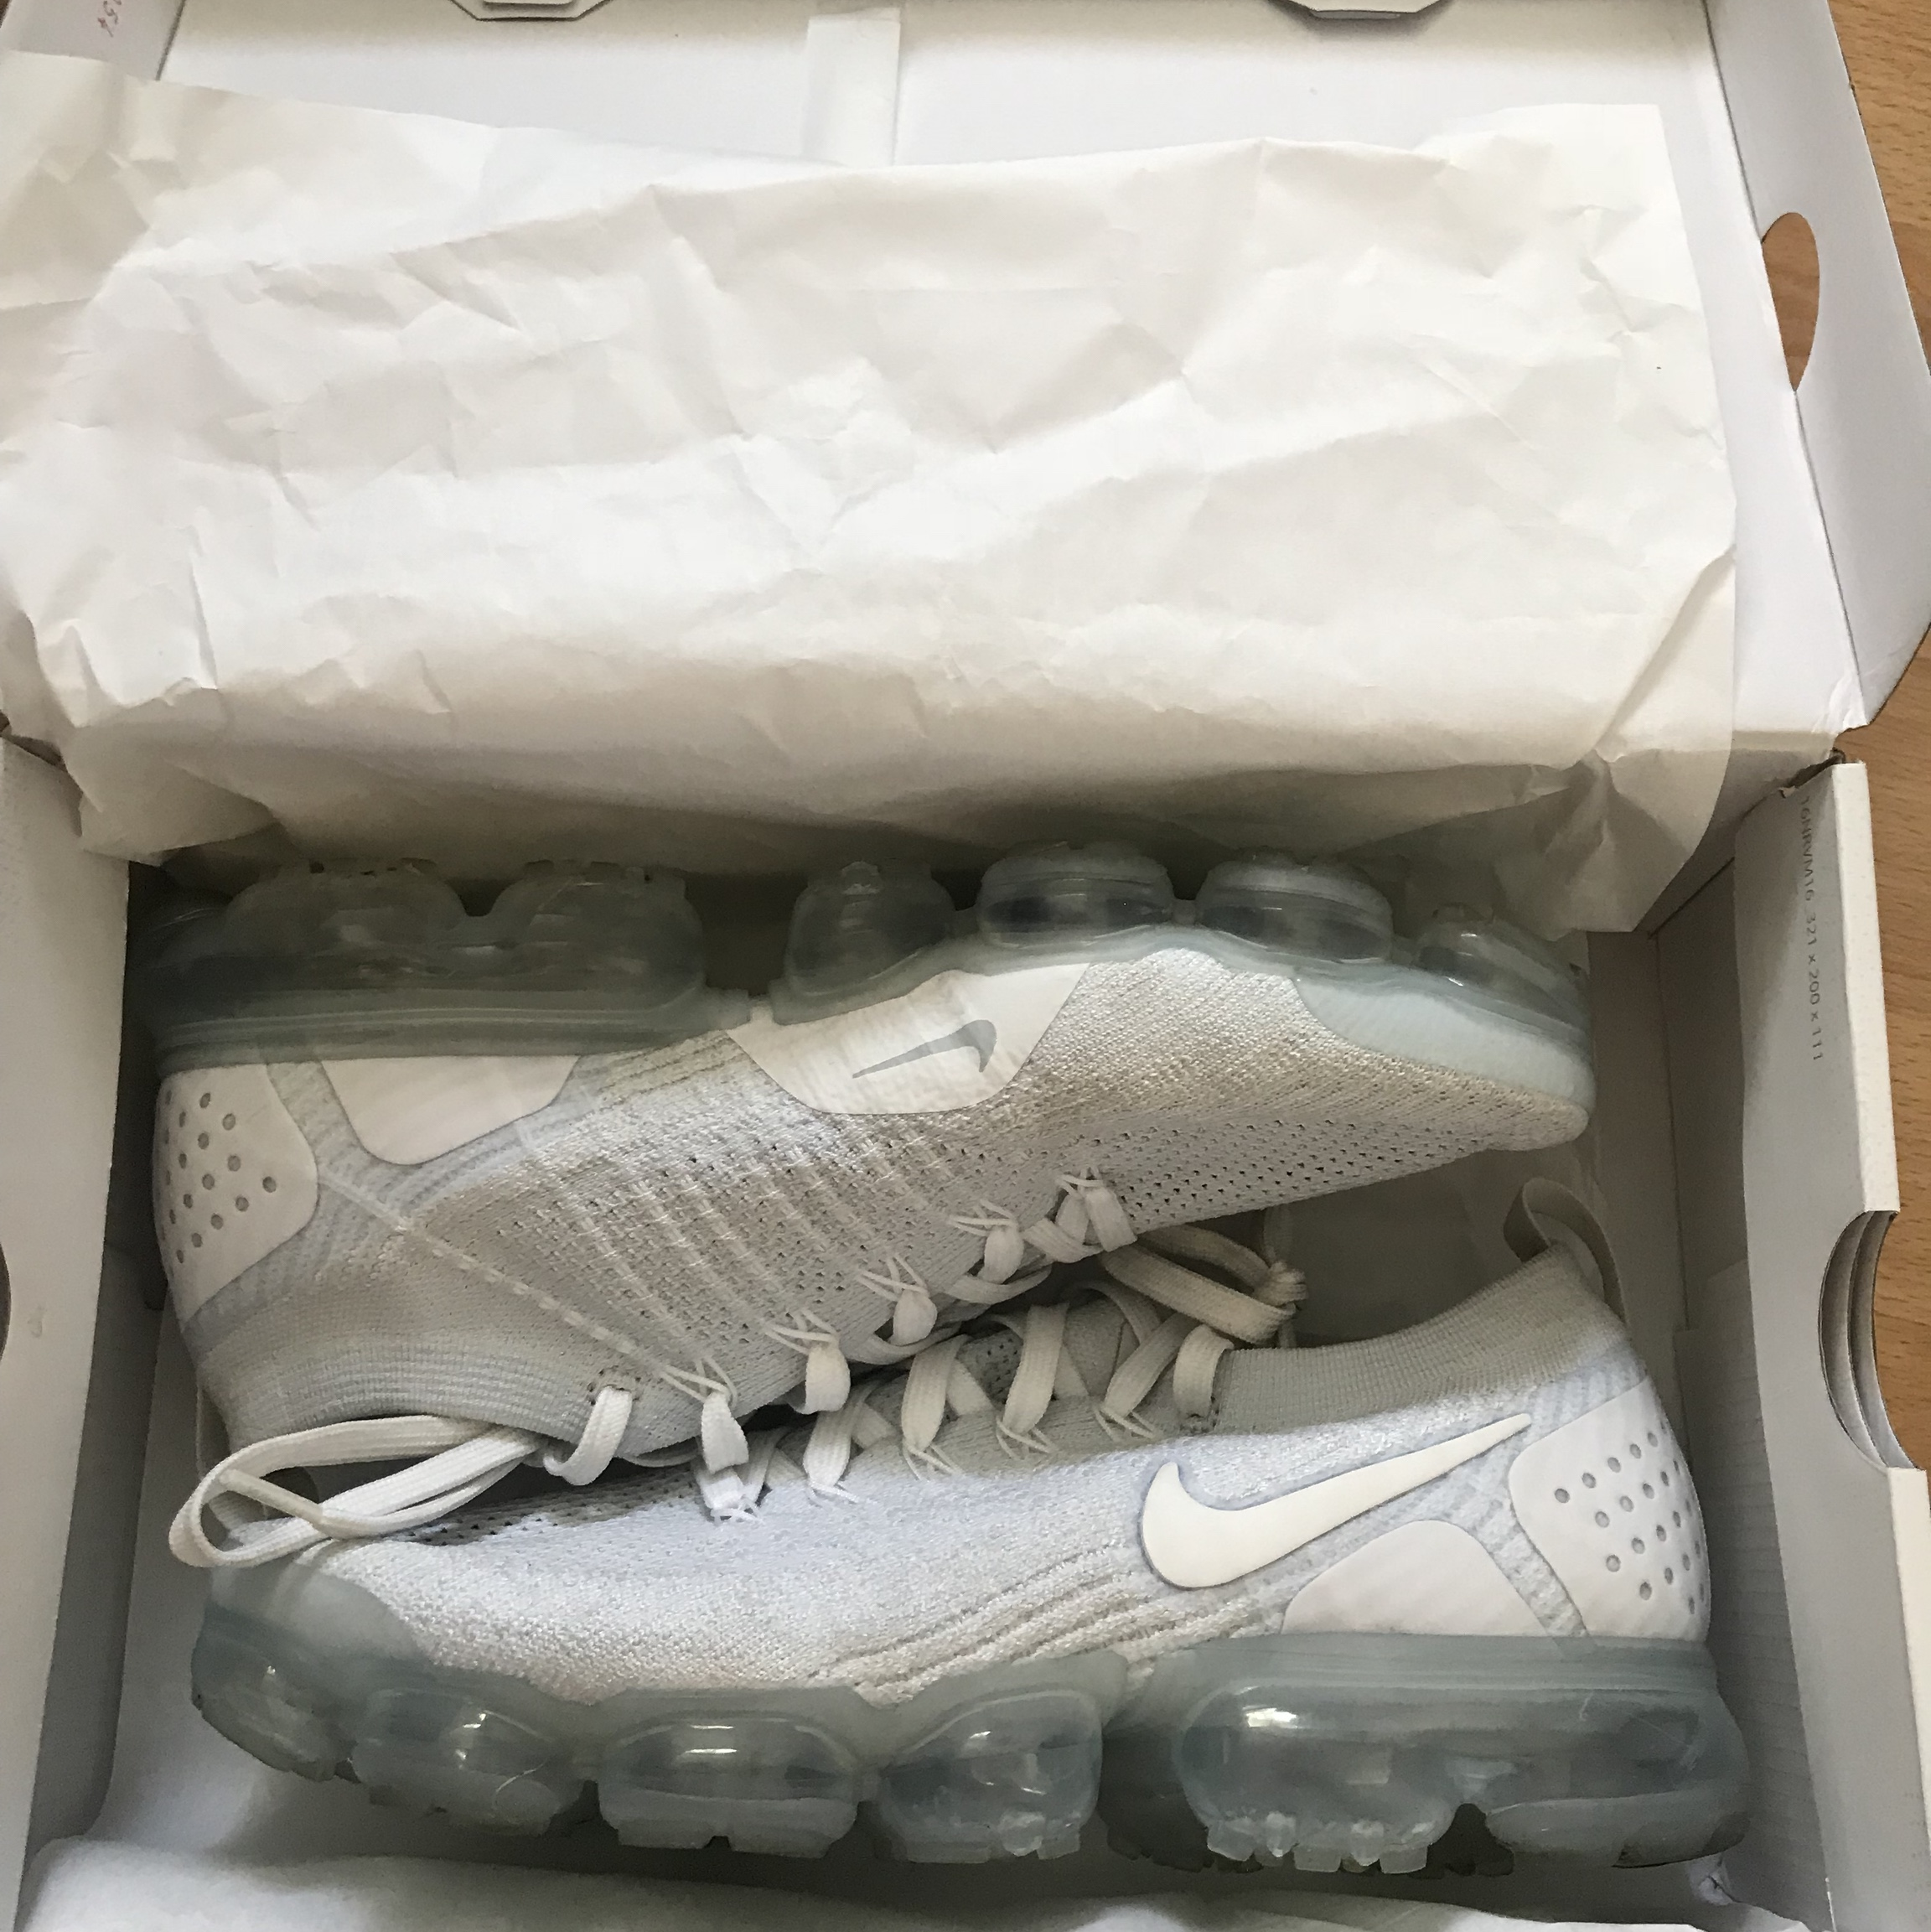 new product 637a5 b3dbf NIKE VAPORMAX FLYKNIT 2 ALL WHITE WITH BOX FROM JD... - Depop